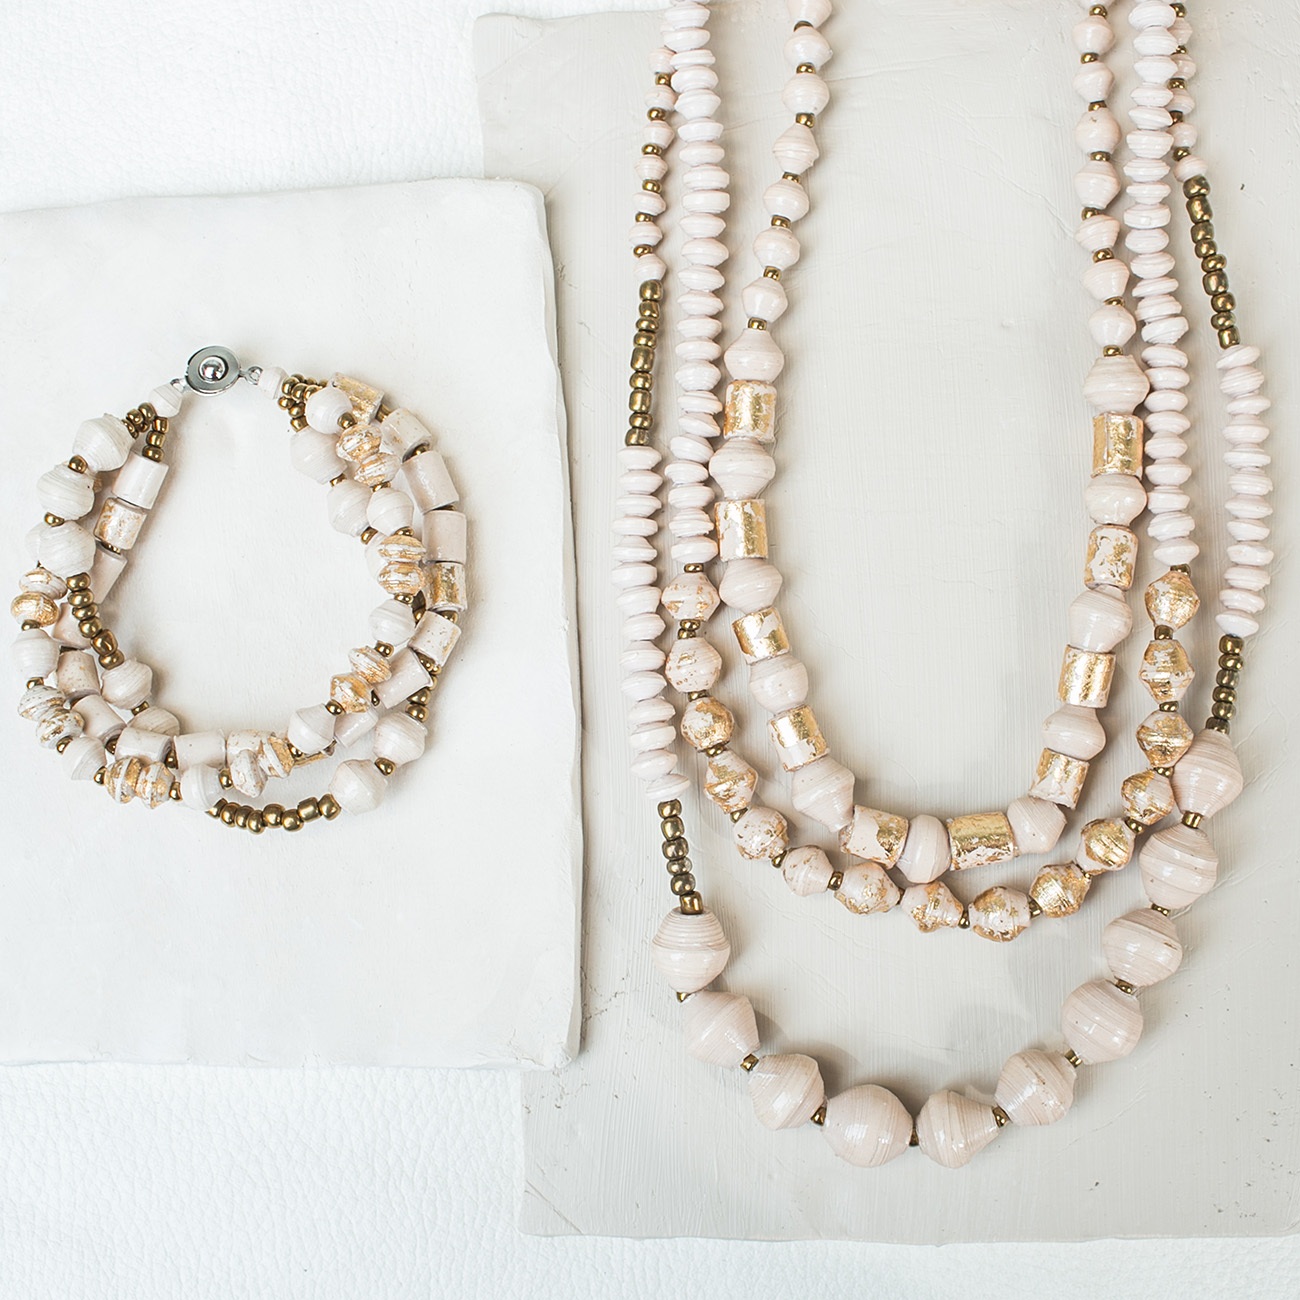 31 Bits Bali Jewelry Collection